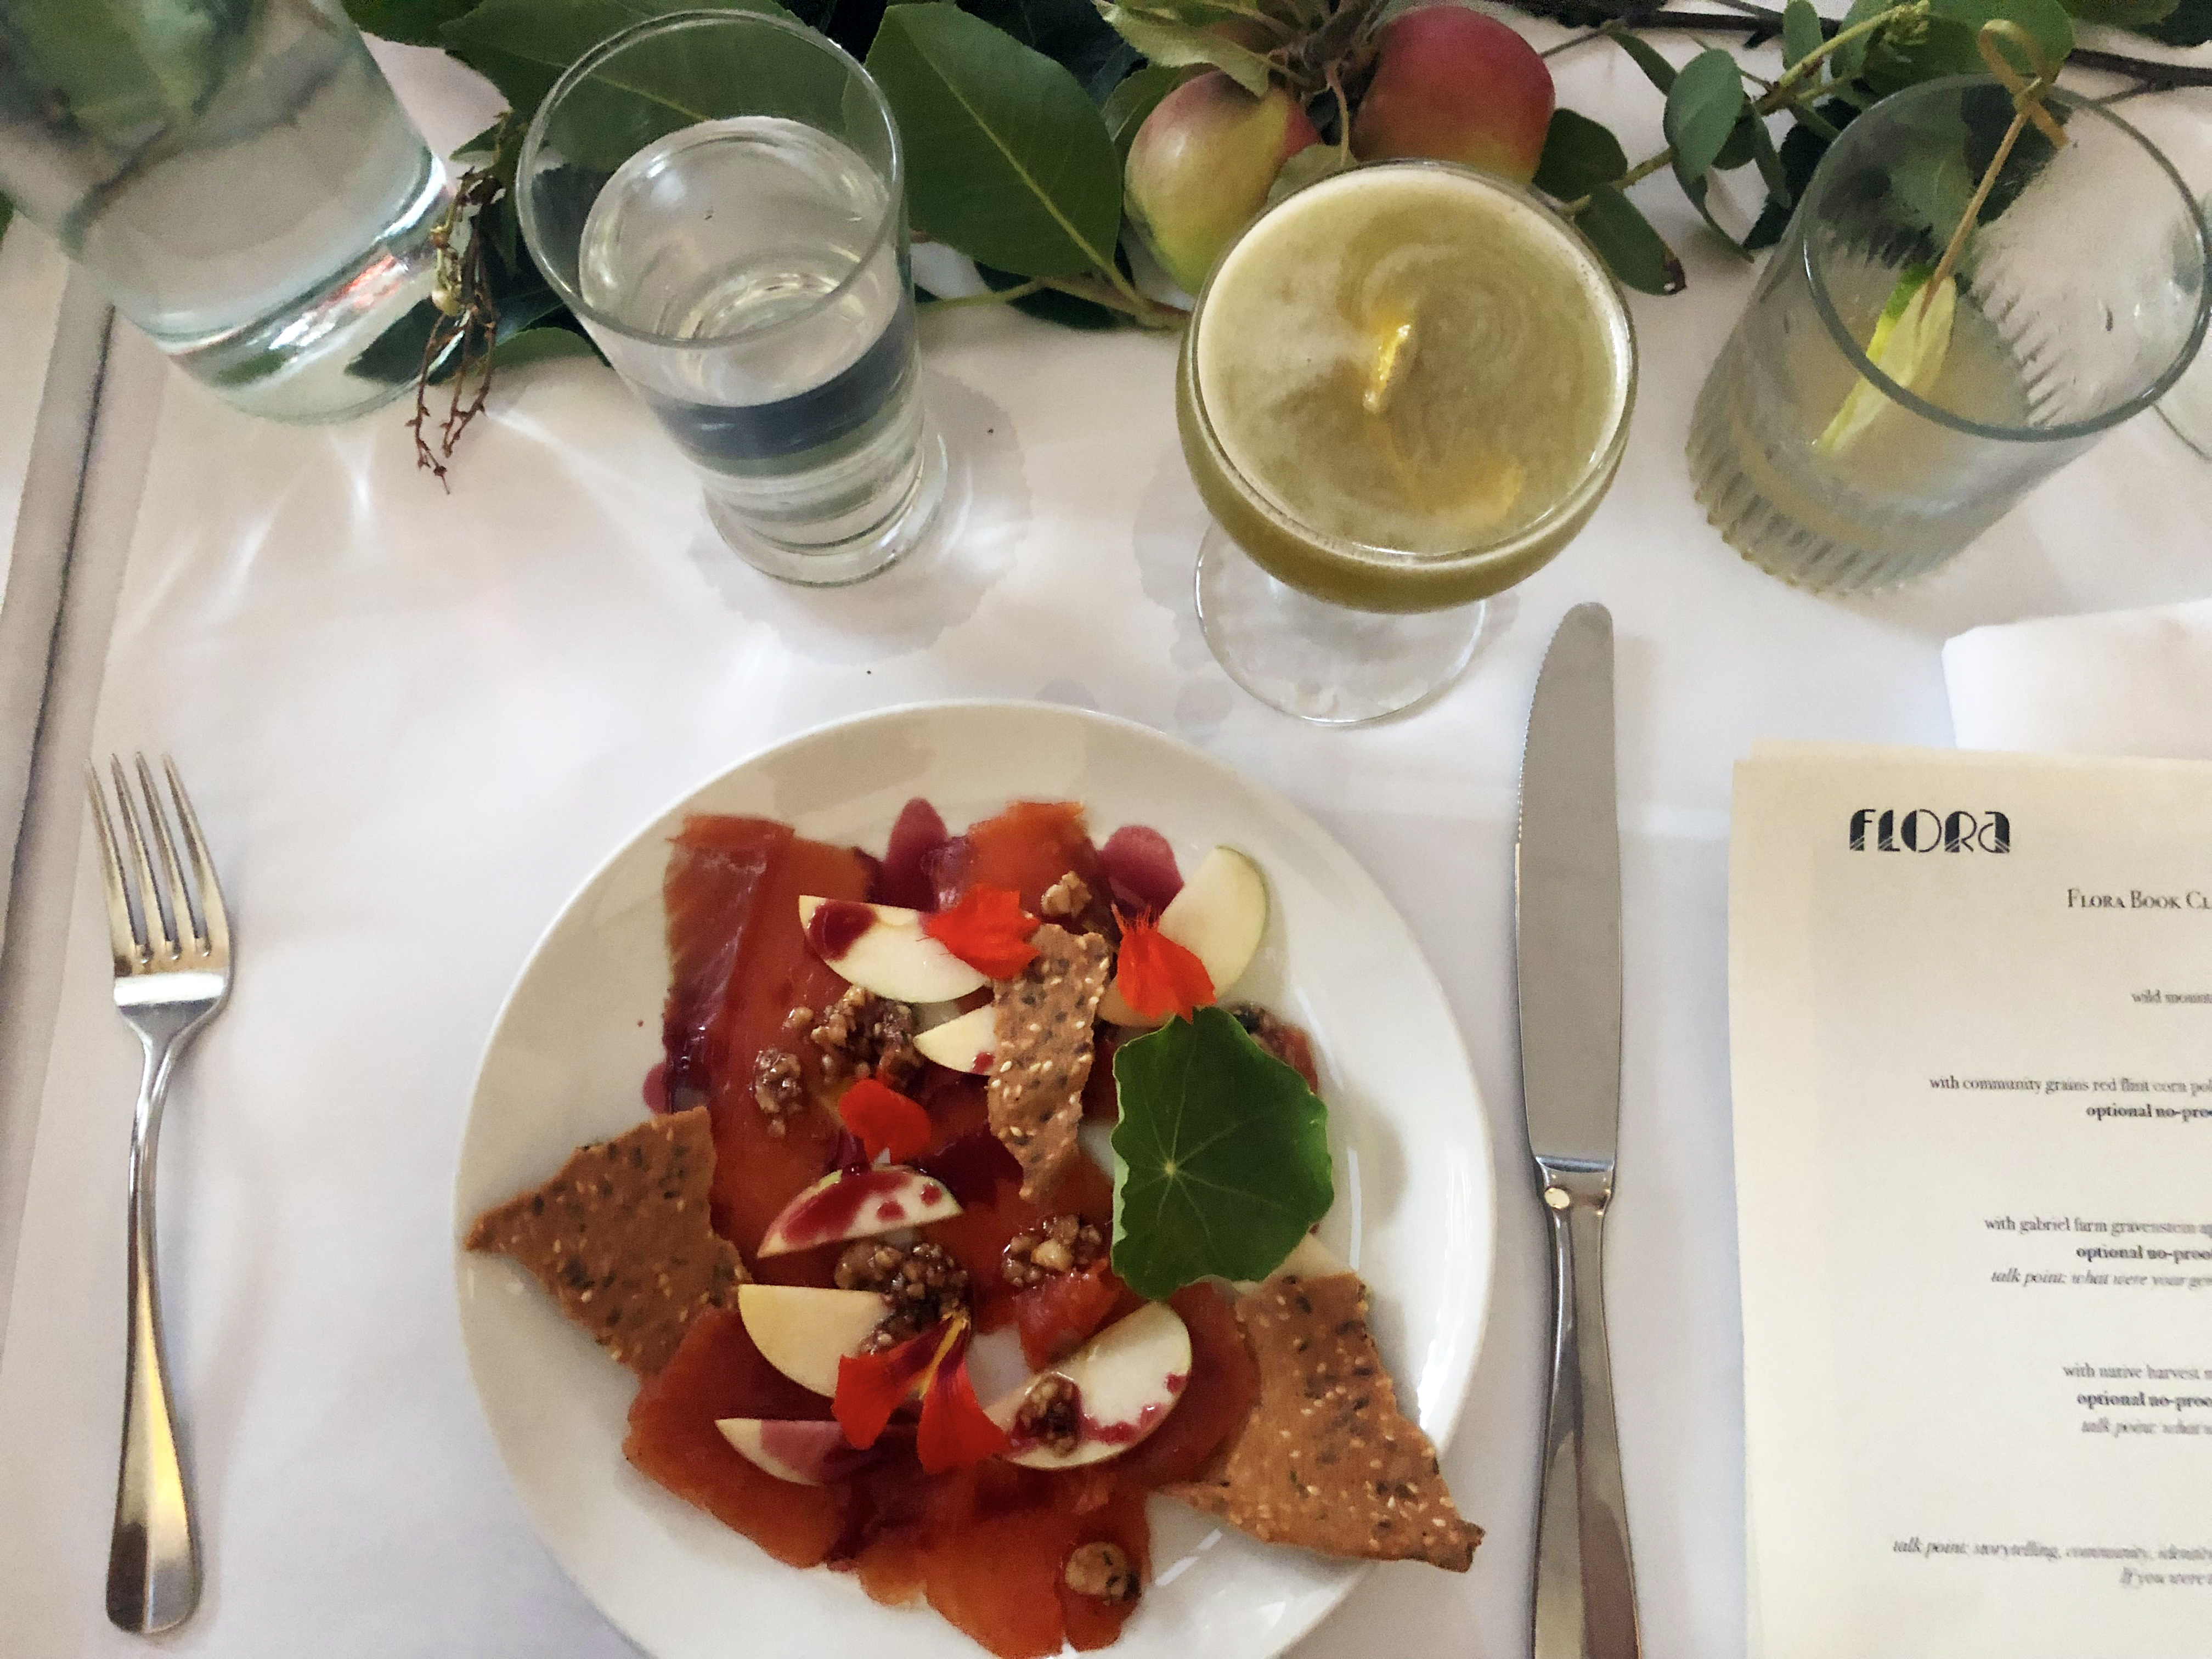 Flora's book club dinners inspire lively conversations over